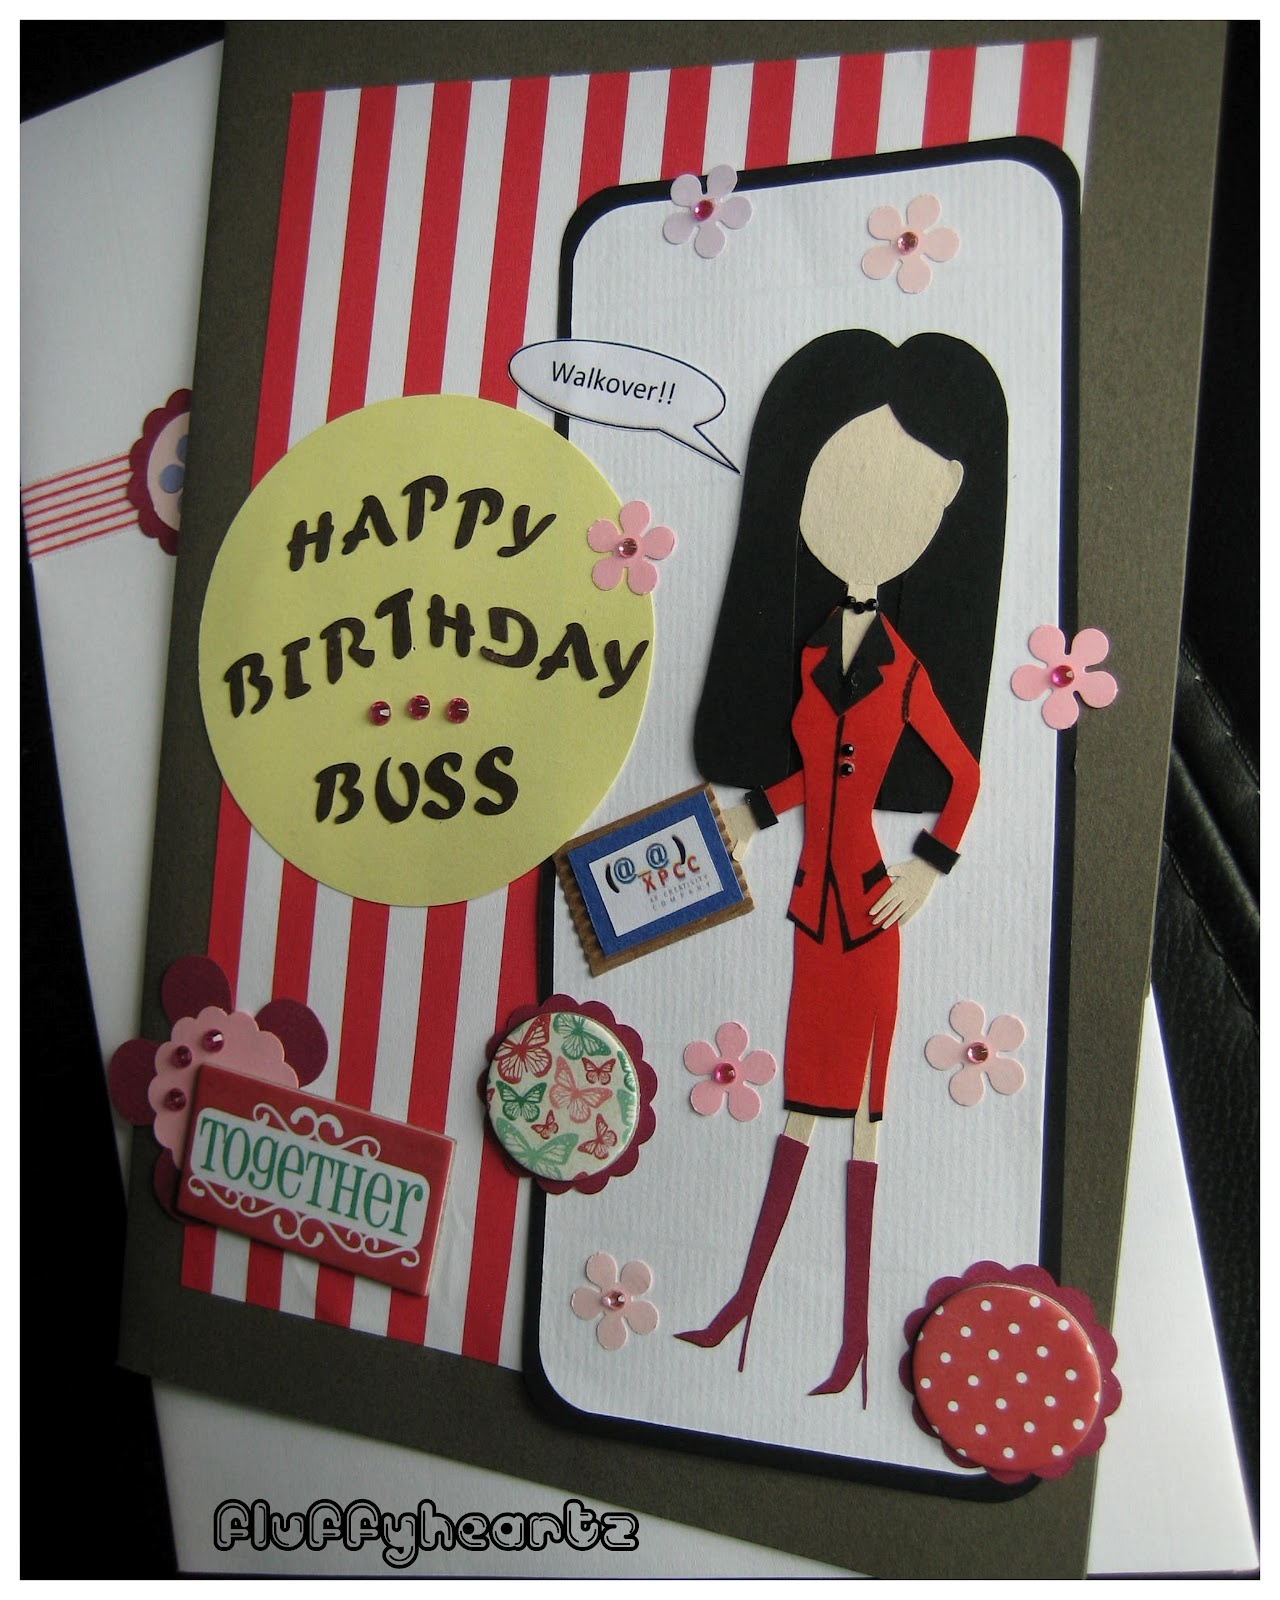 Birthday Ideas : Glamorous Happy Boss Day Cards Free Printable - Happy Boss Day Cards Free Printable